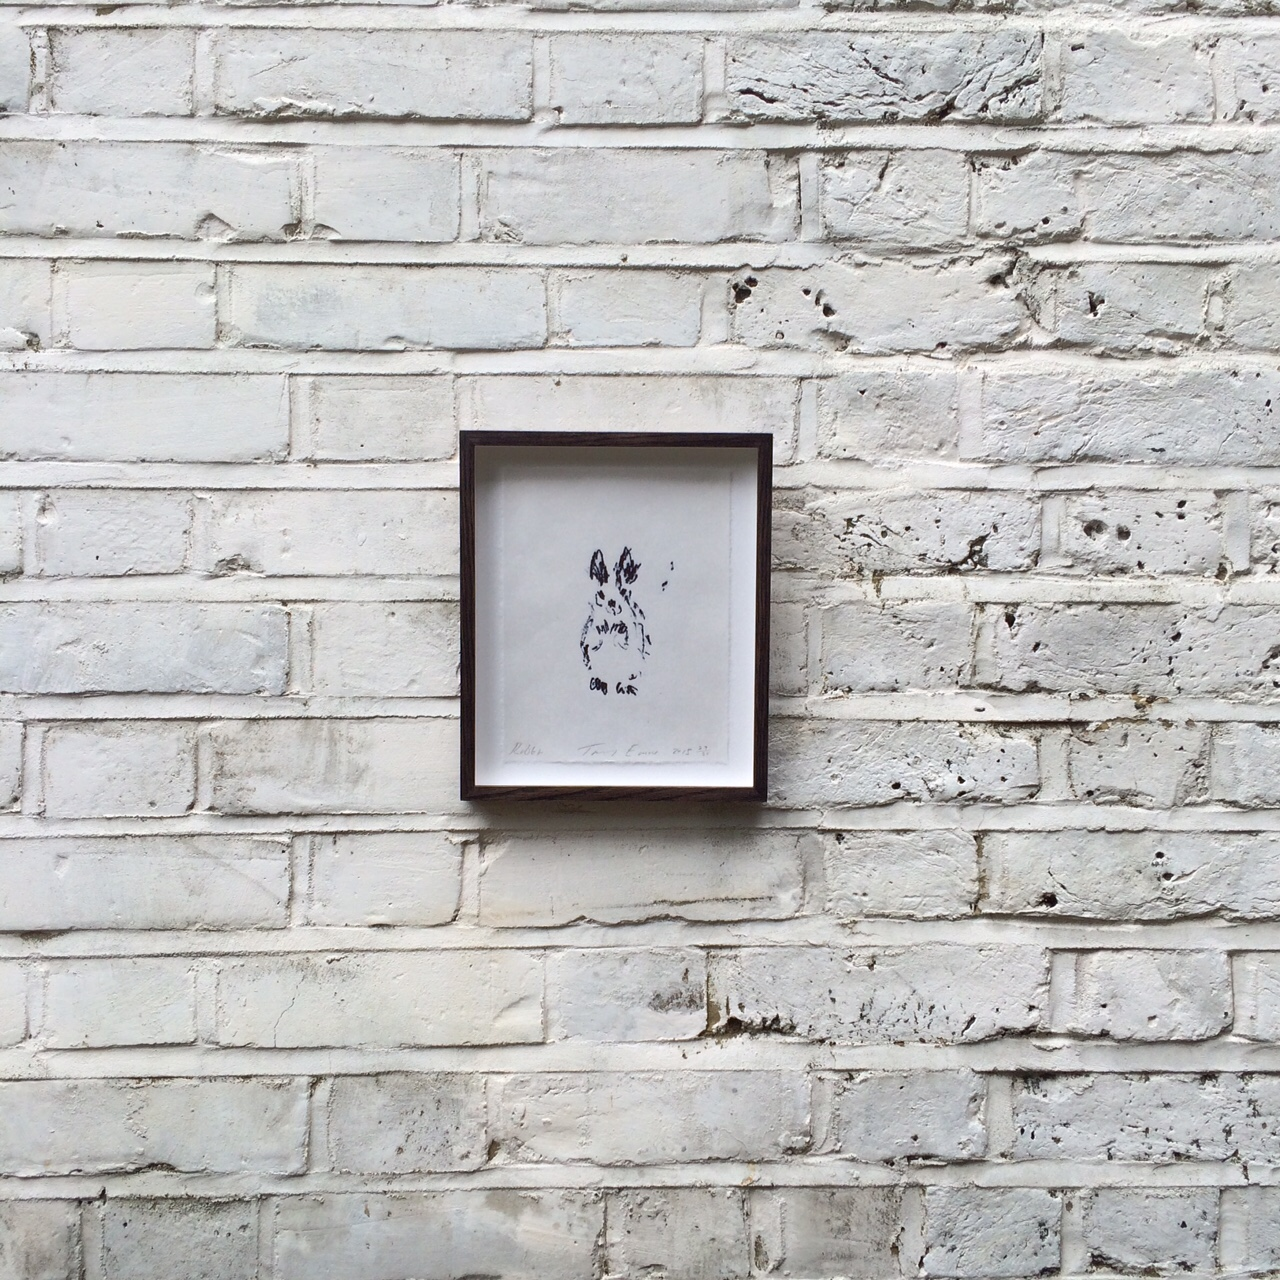 Bespoke Picture Framing in North London